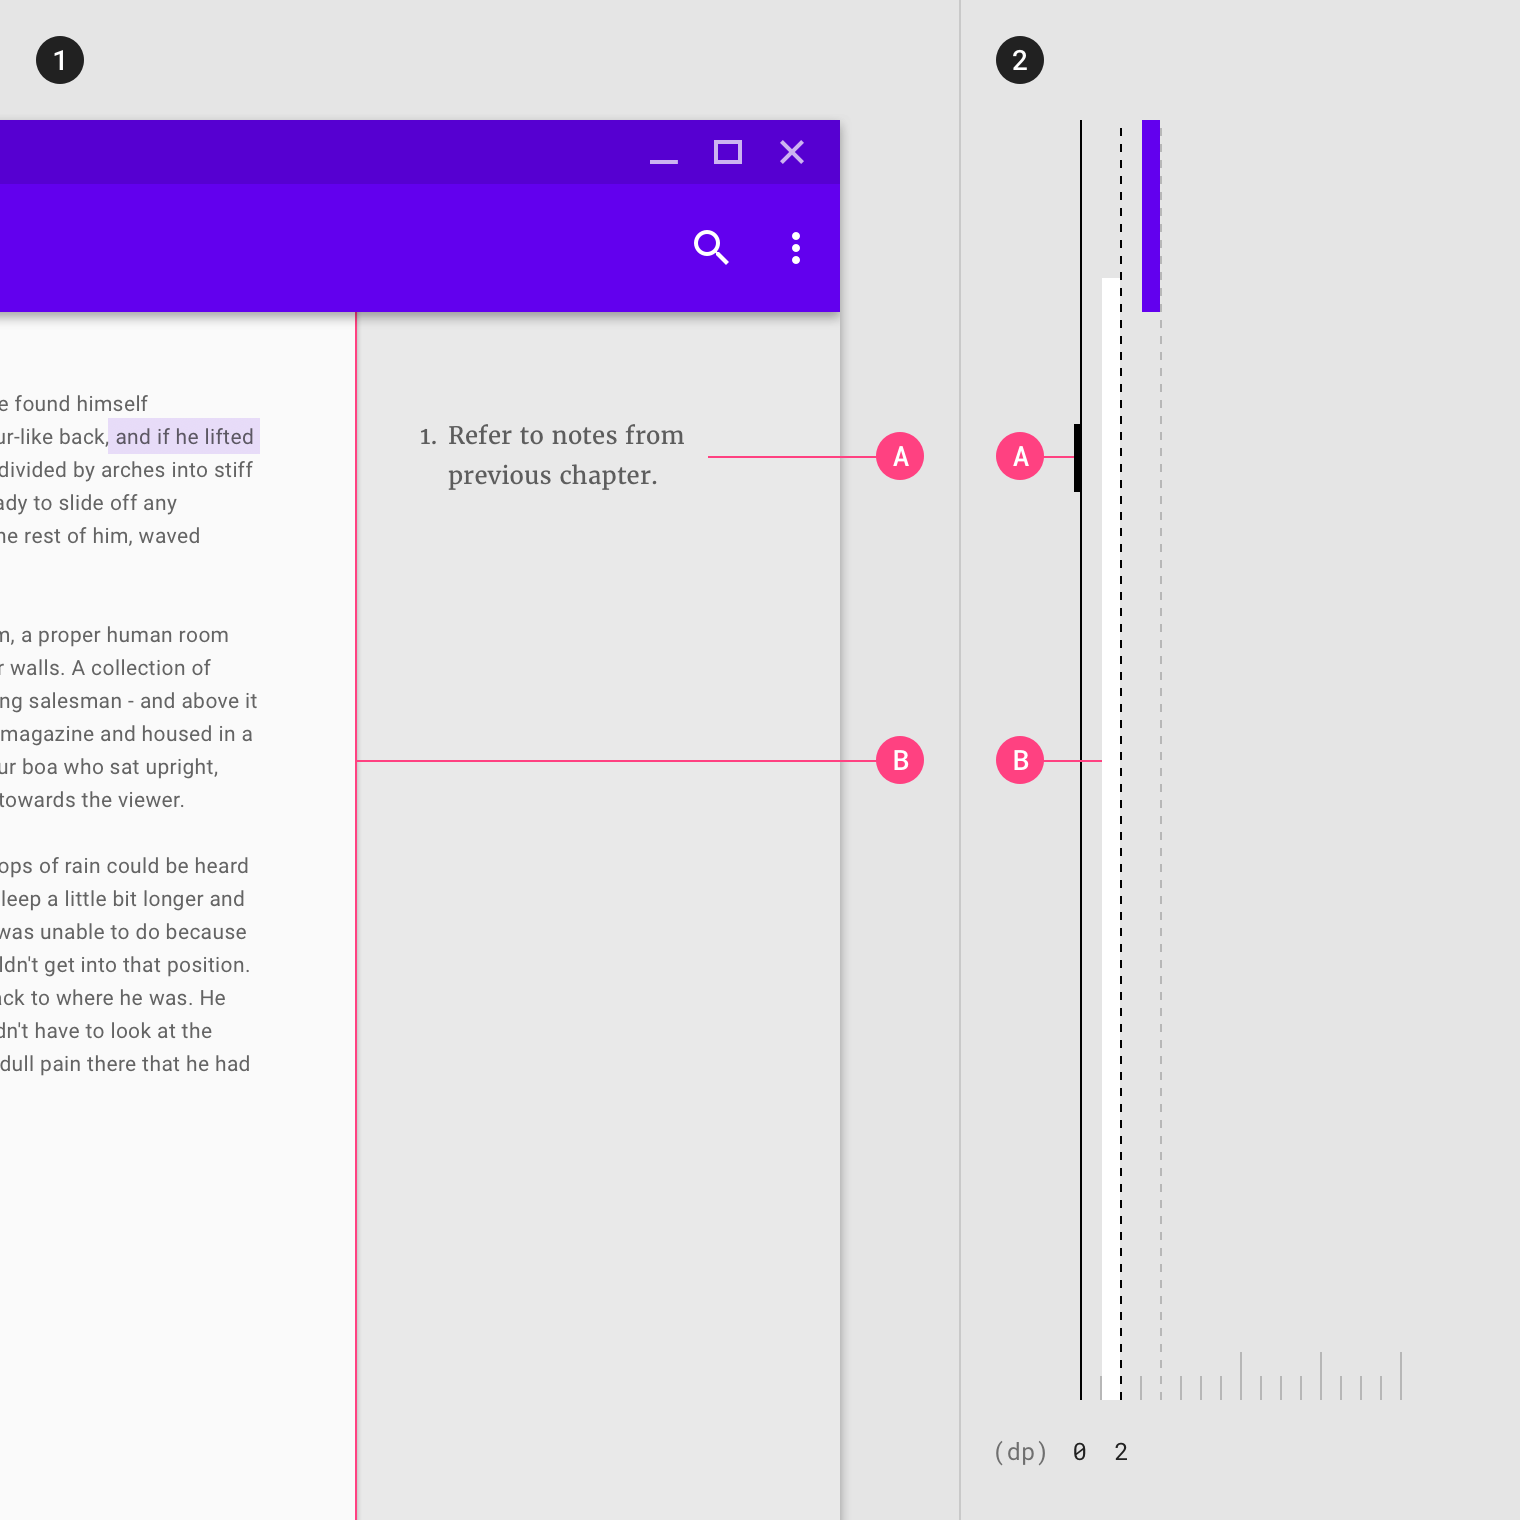 Elevation Material Design The Above Diagram Shows A Typical Specification Vertical Measures Front 1 And Side 2 Views Of Desktop Interface Demonstrate How More Important Content That Is Primary Focus B Appears In